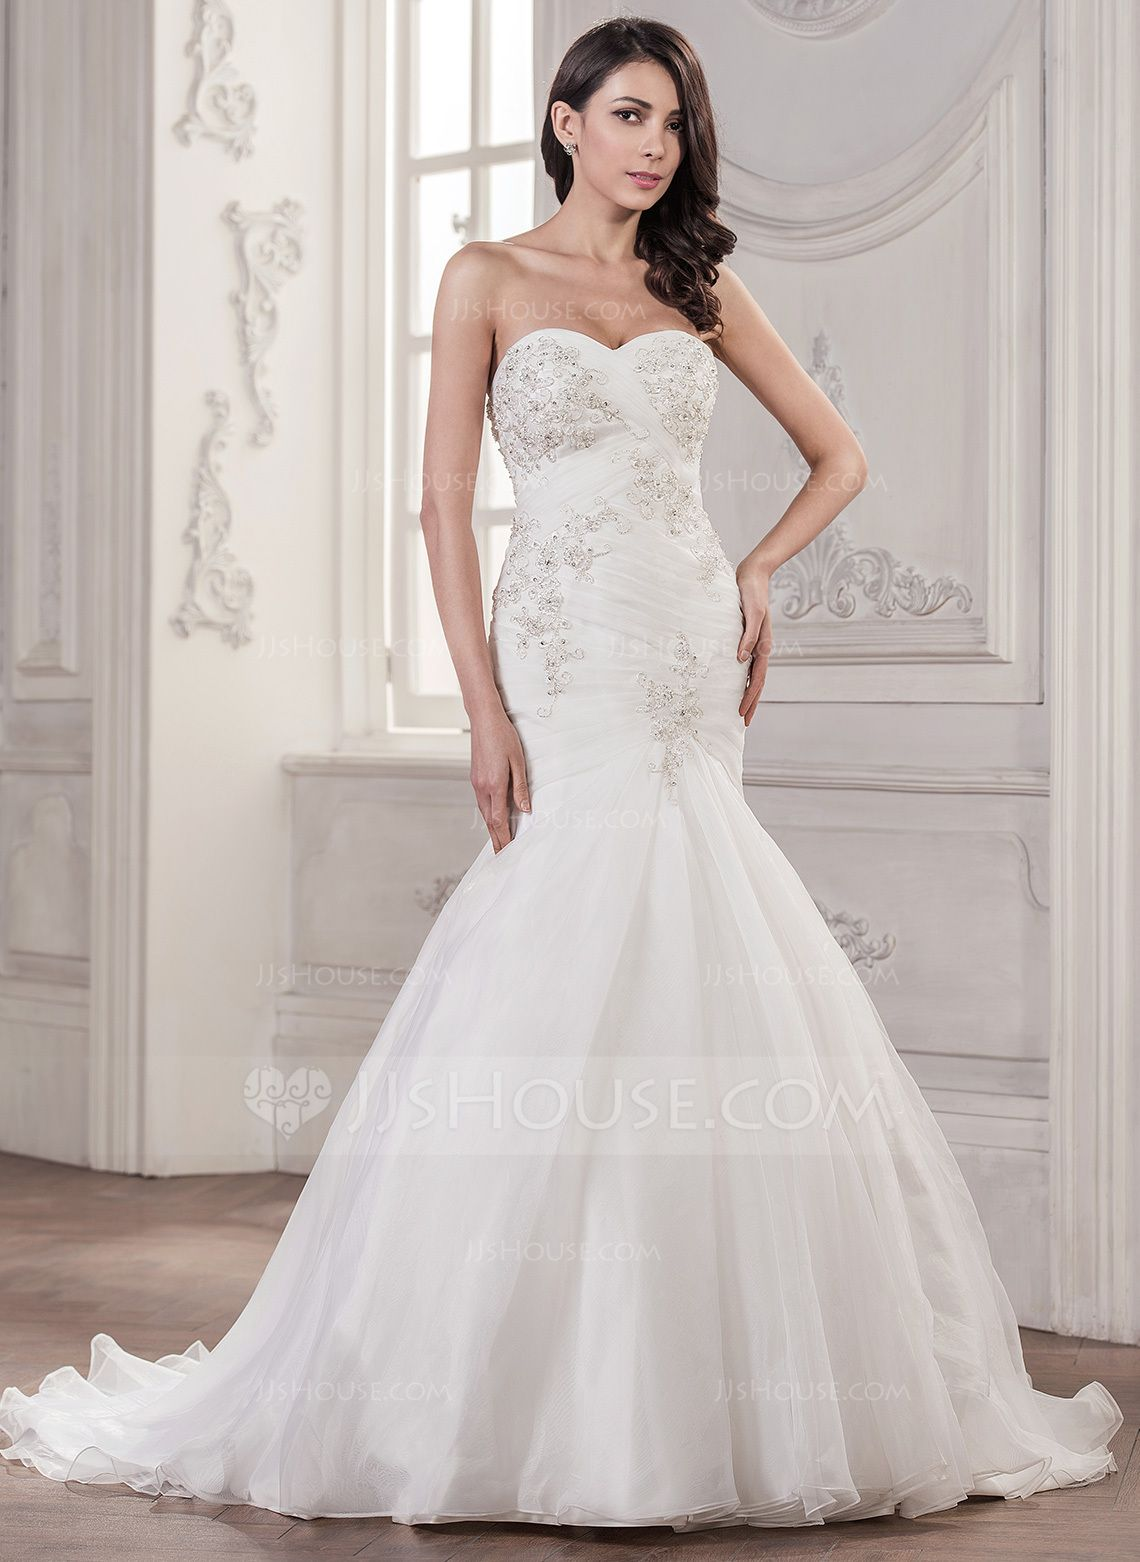 Mermaid ruffle wedding dress  TrumpetMermaid Sweetheart Court Train Organza Wedding Dress With